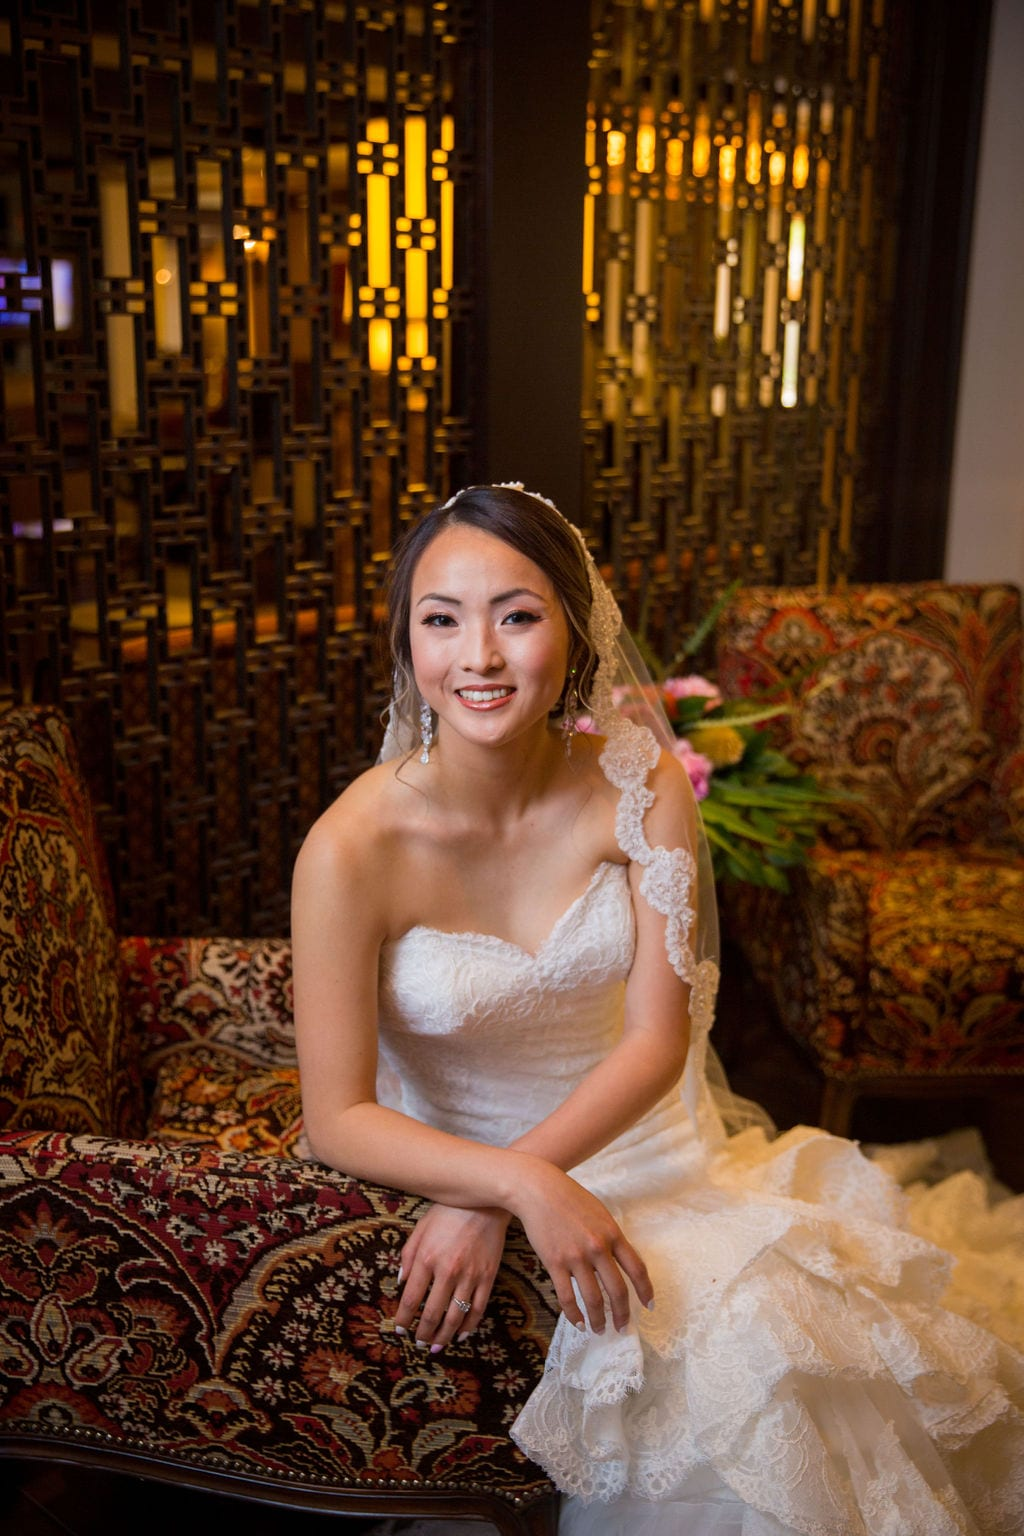 Marriott Plaza Styled shoot bride in lobby looking